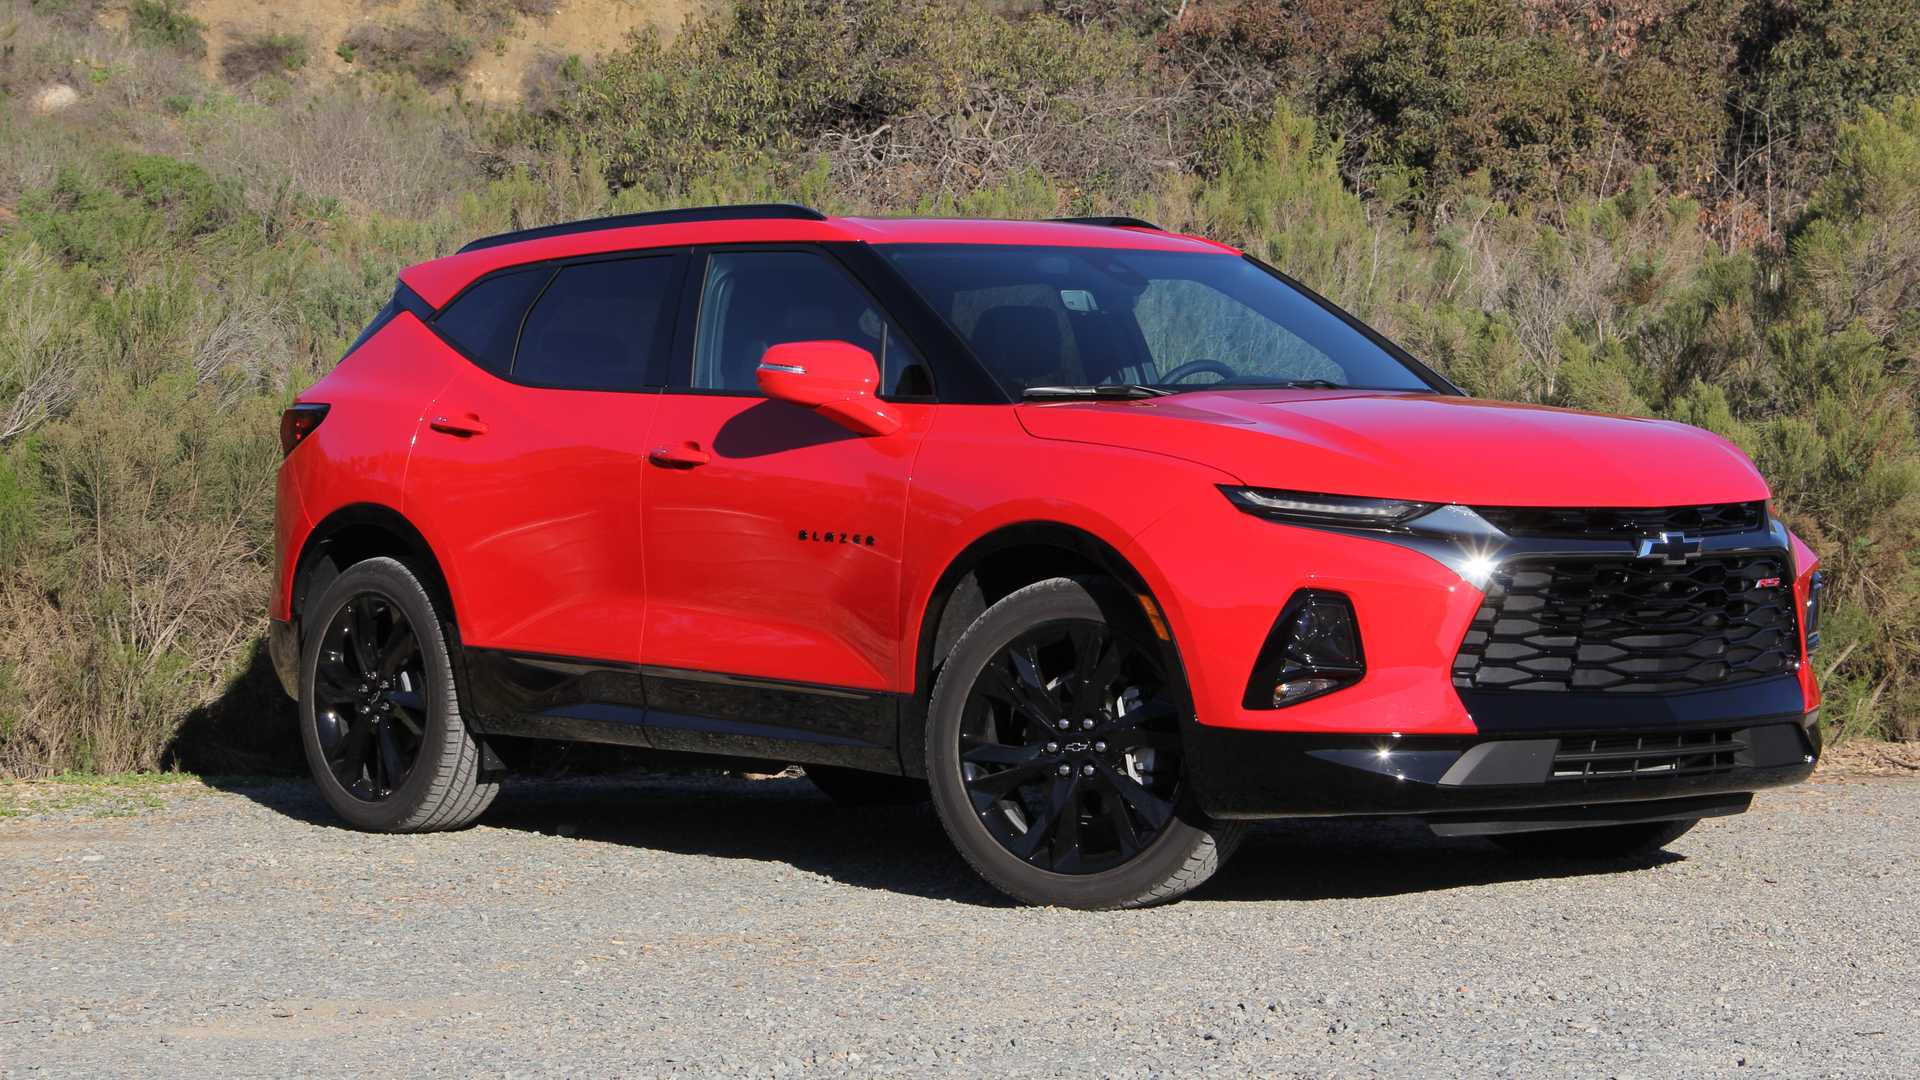 78 New 2020 The Chevy Blazer Spy Shoot